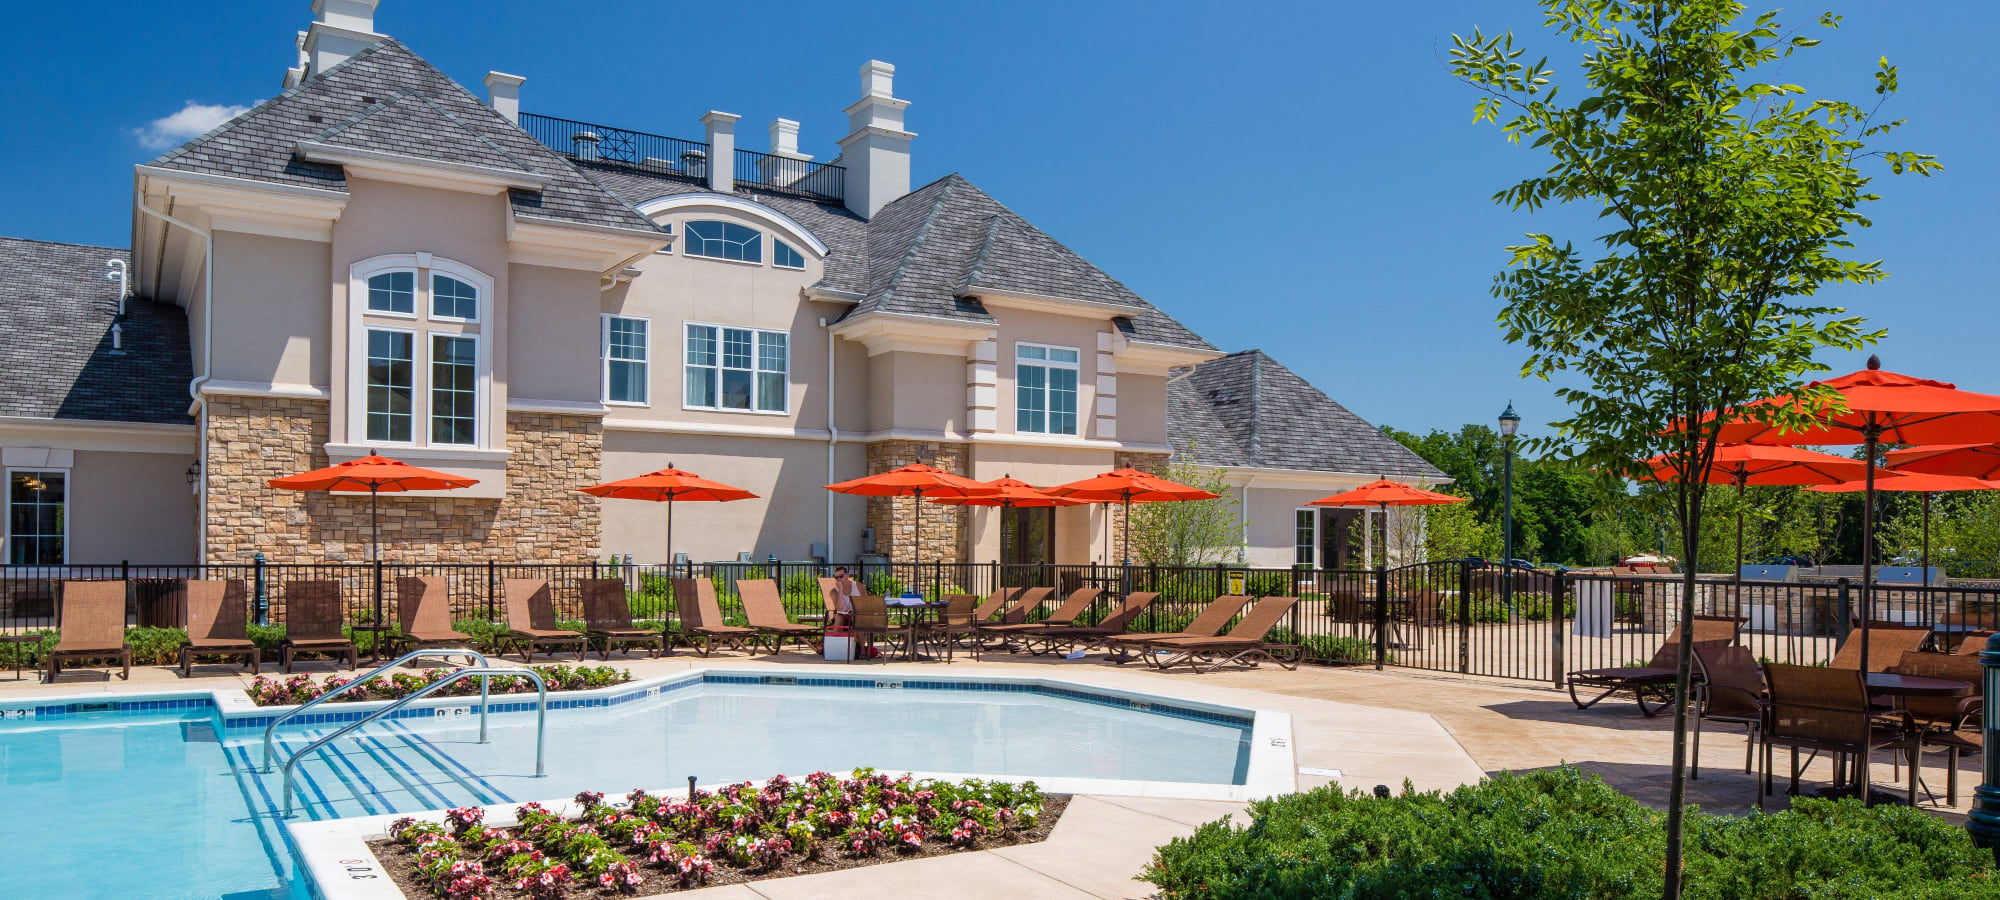 Apartments at The Grove Somerset in Somerset, New Jersey